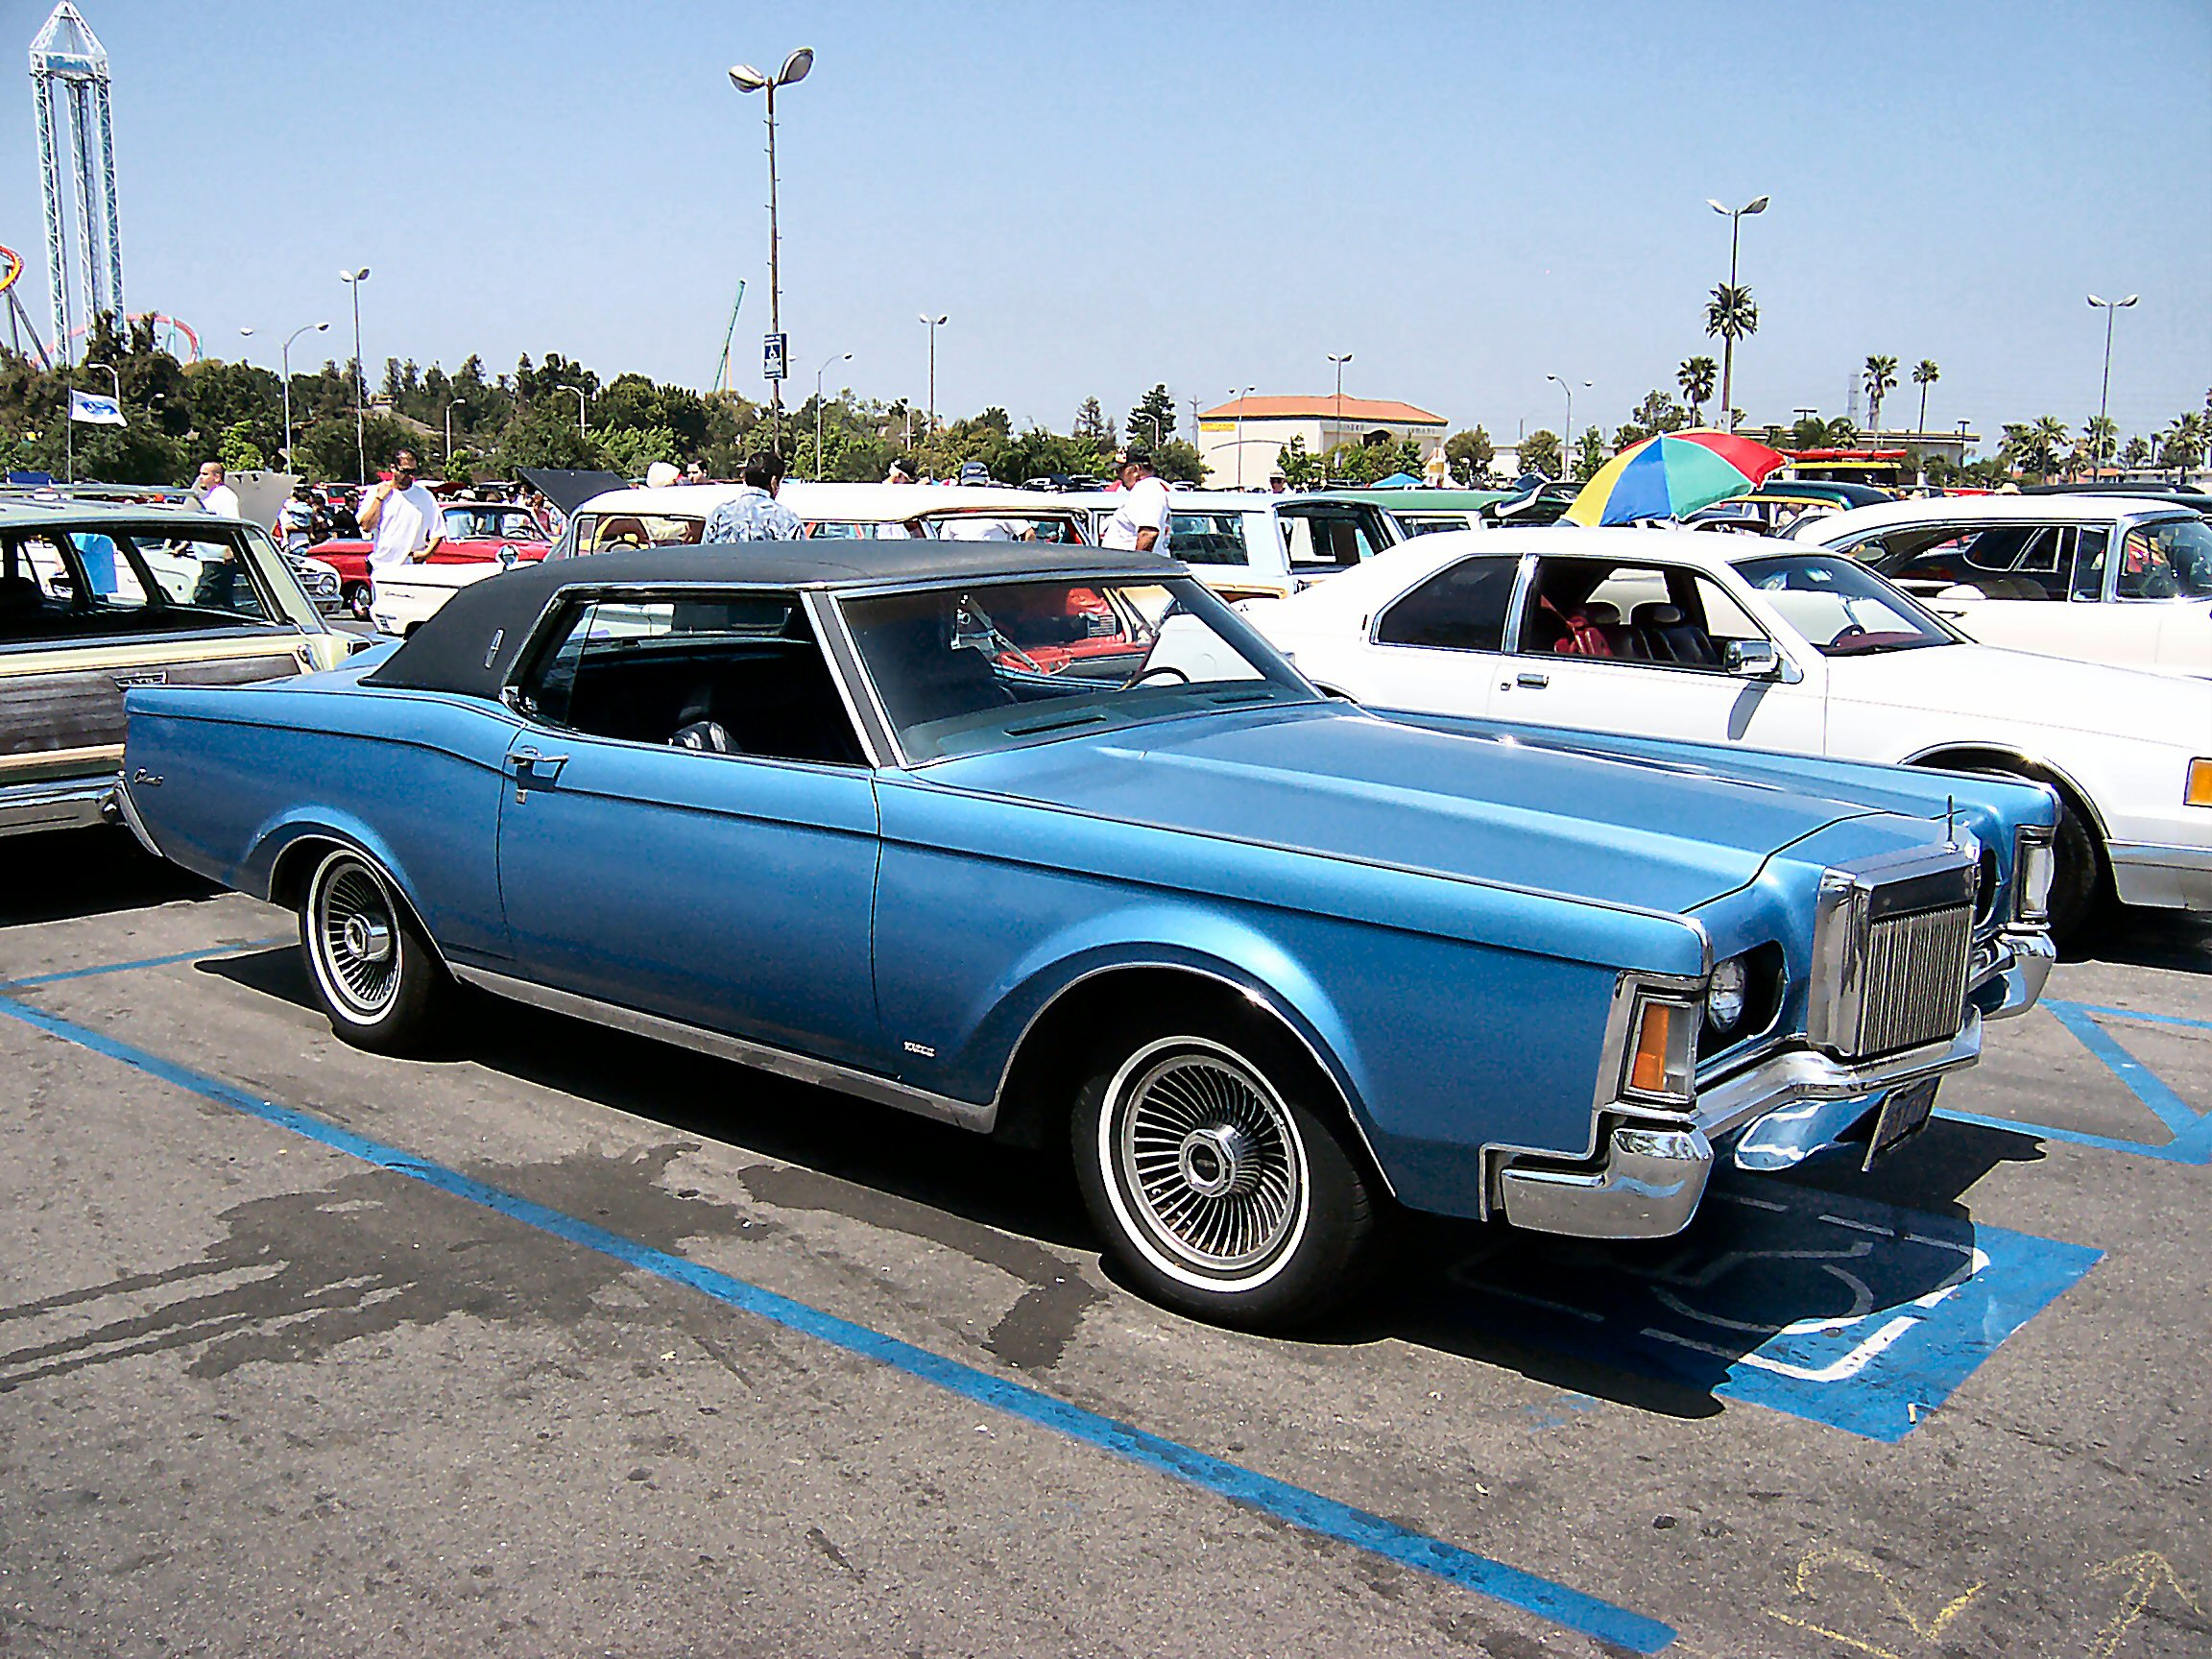 file1970 lincoln continental mark iiijpg